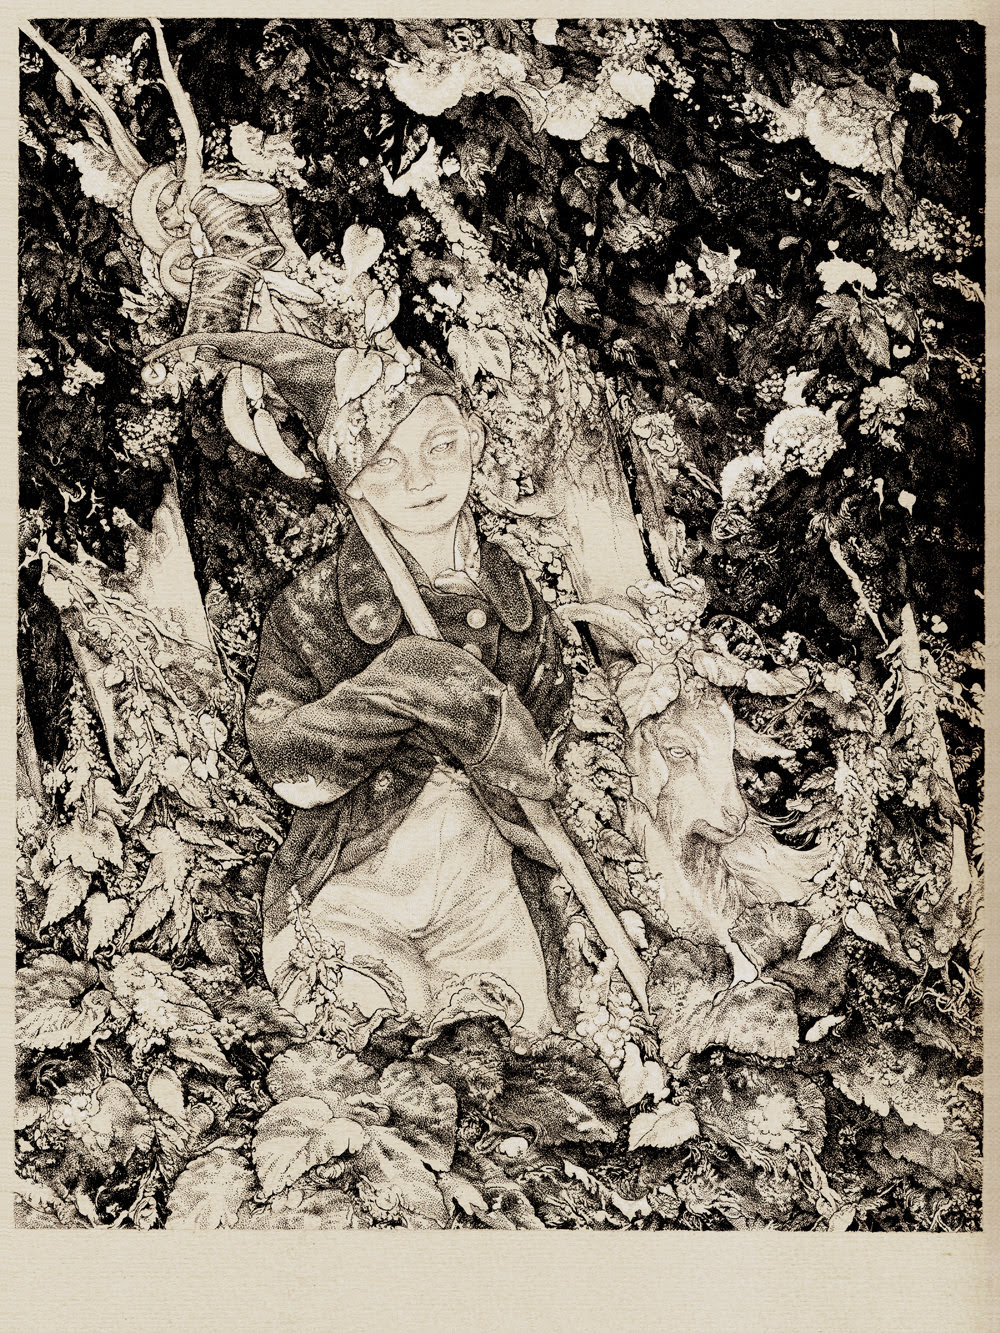 """Petrushka"" by Vania Zouravliov.  12"" x 16"" Giclee.  Ed of 65 S/N.  $55"